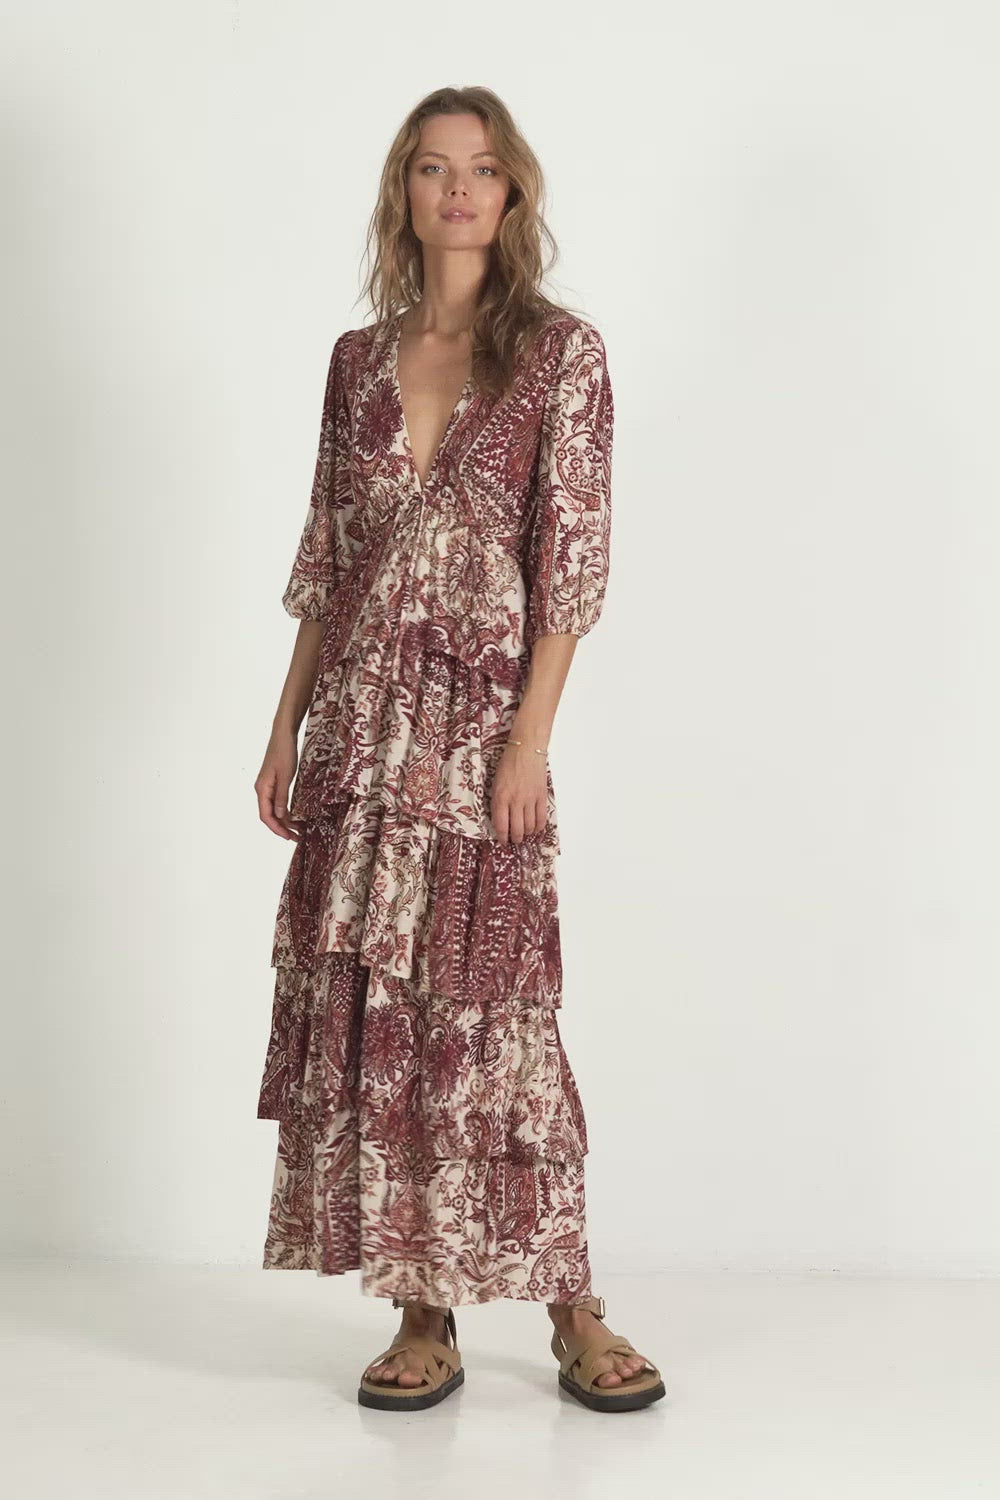 A woman wearing a Sahara maxi paisley winter dress by Lilya